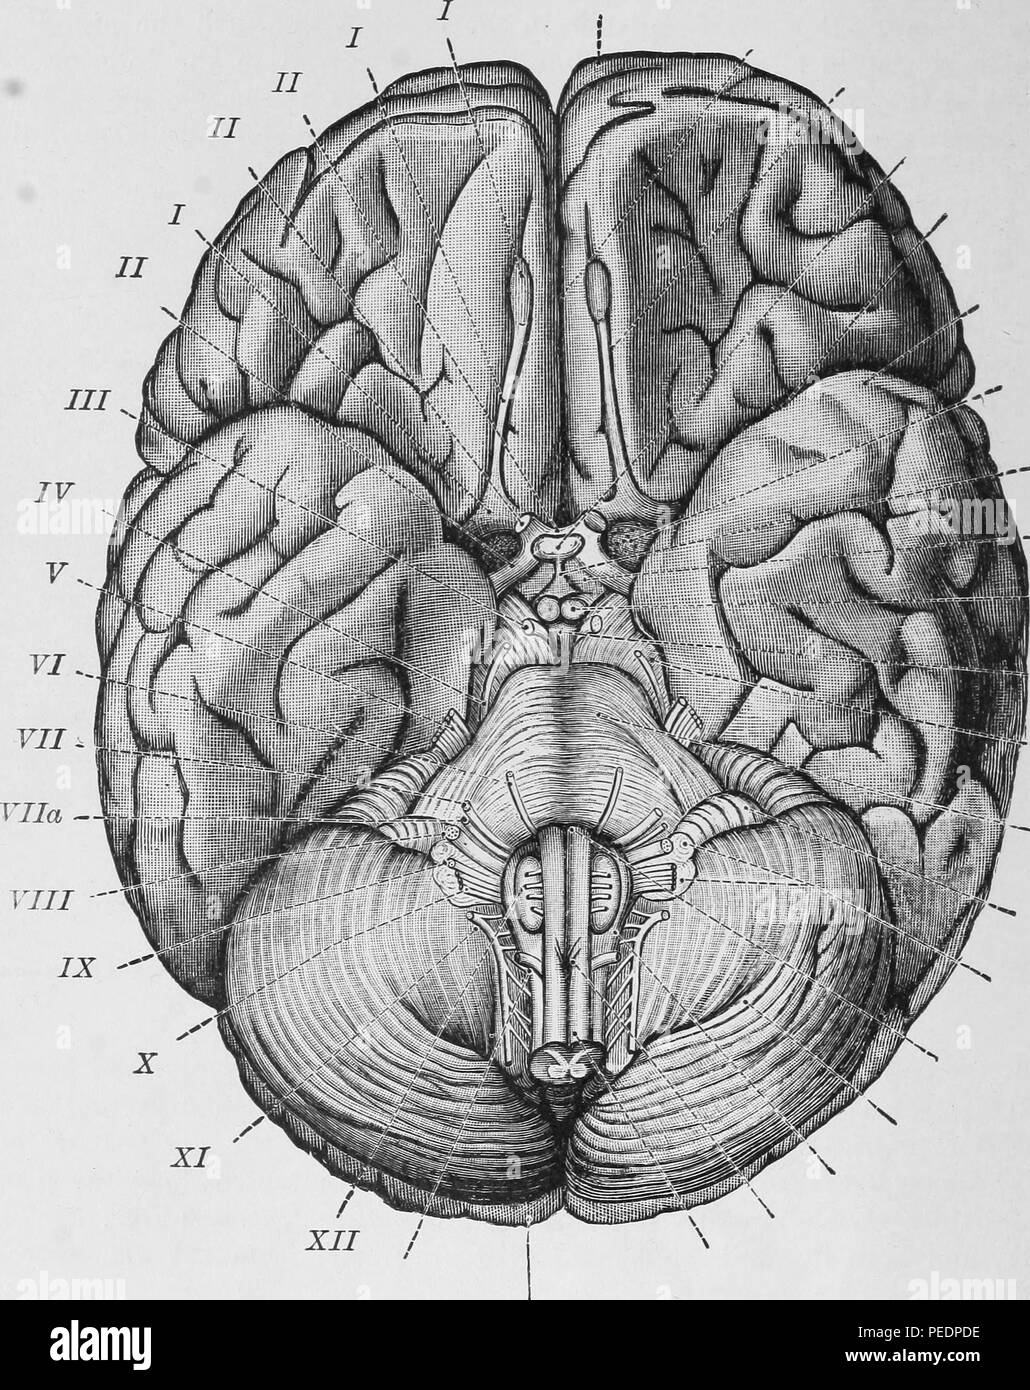 Black and white print illustrating the base of the brain and associated cranial nerves, published in Archibald Church and Julius L Salinger's 'Diseases of the Nervous System', 1910. Courtesy Internet Archive. () - Stock Image